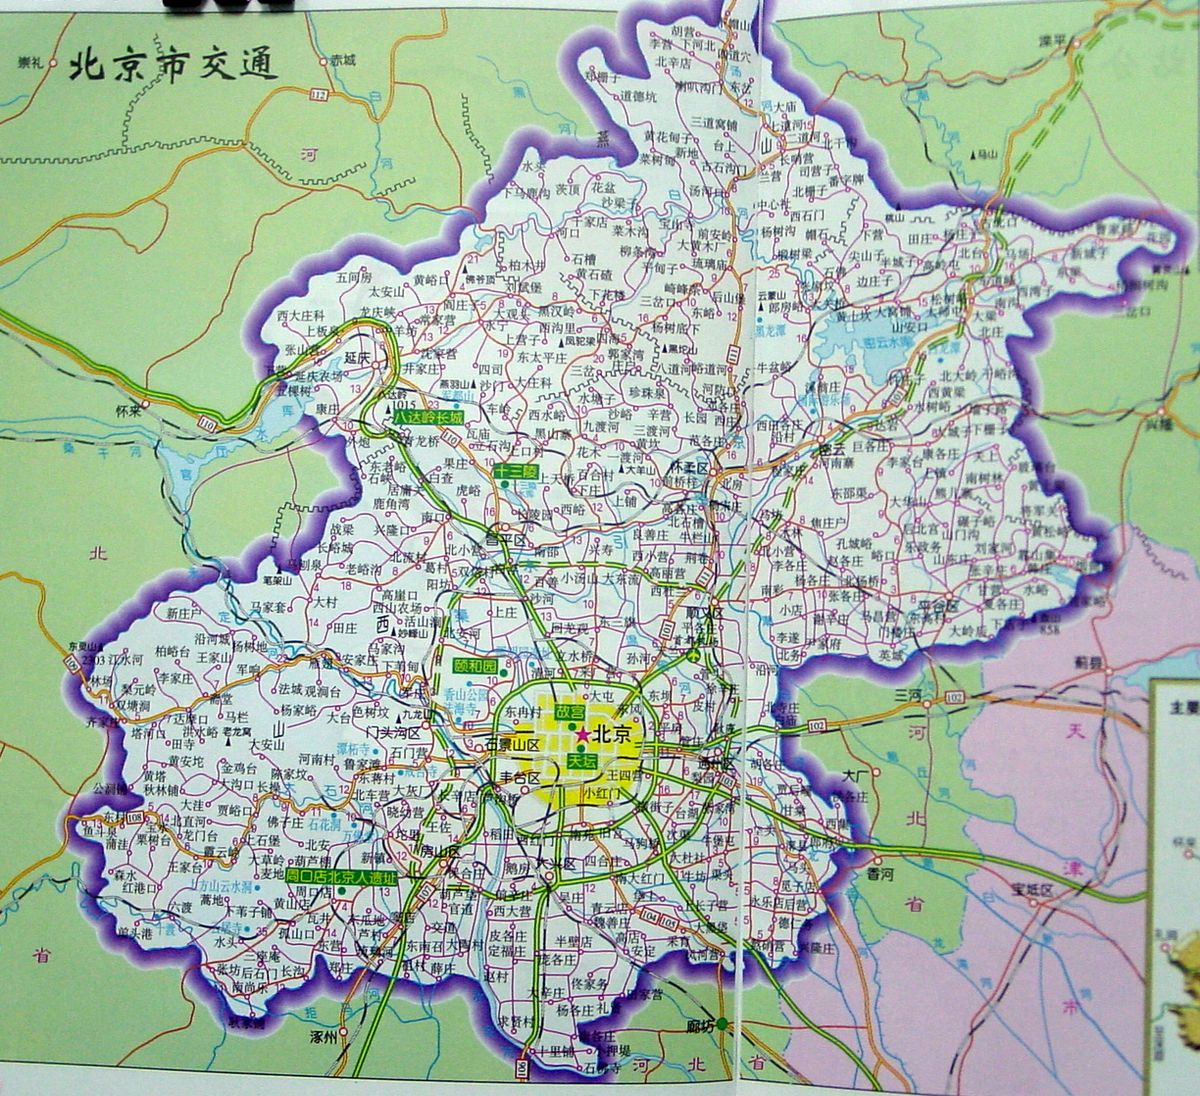 beijing map communications province map. beijing map communicationsmapchina mapshenzhen mapworld map